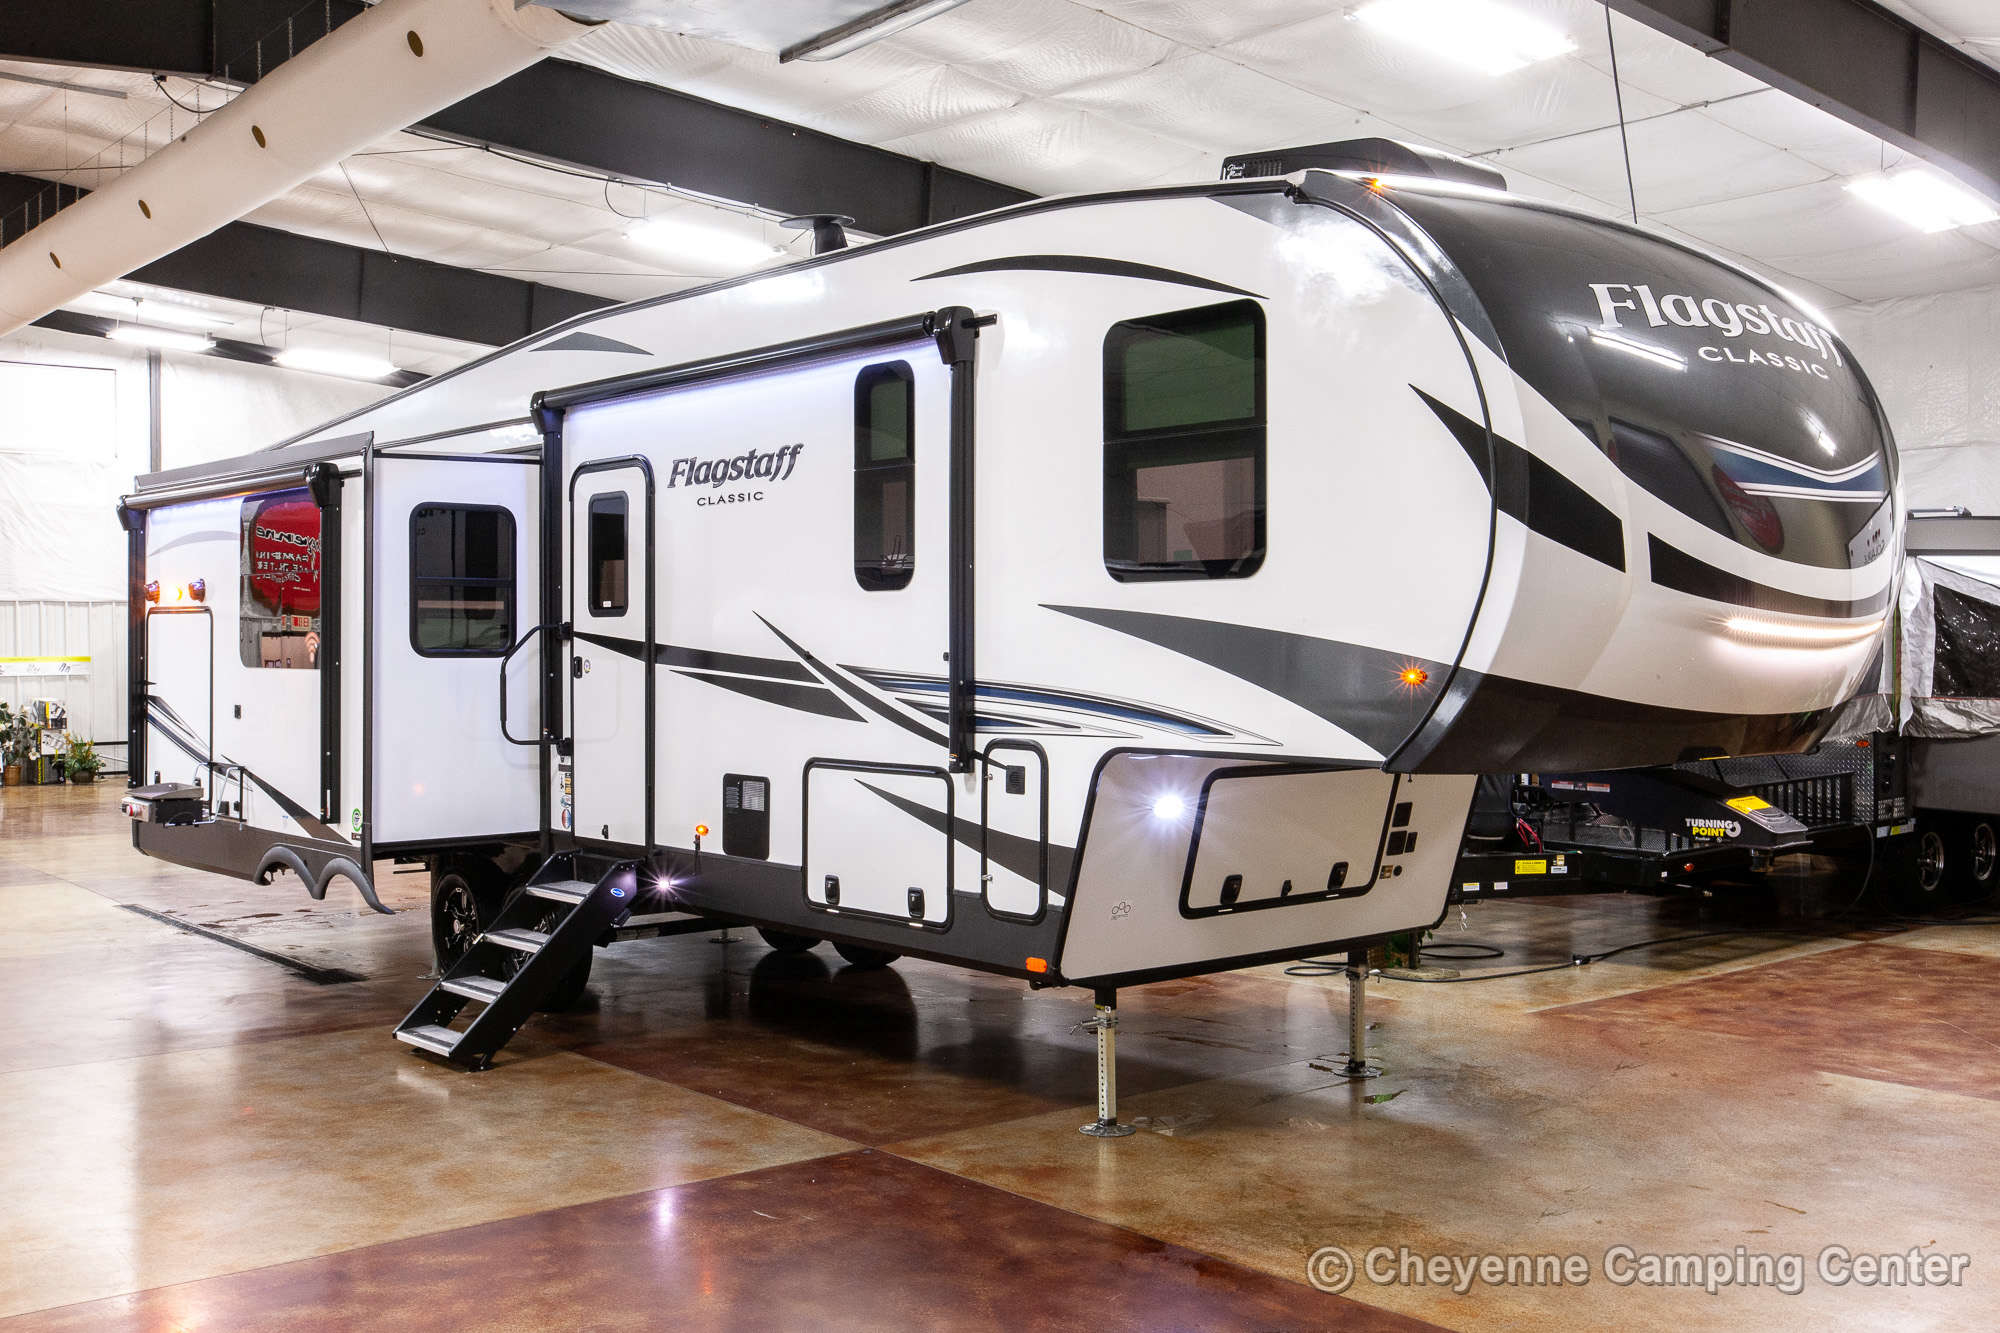 2021 Forest River Classic by Flagstaff 8529CSB Fifth Wheel